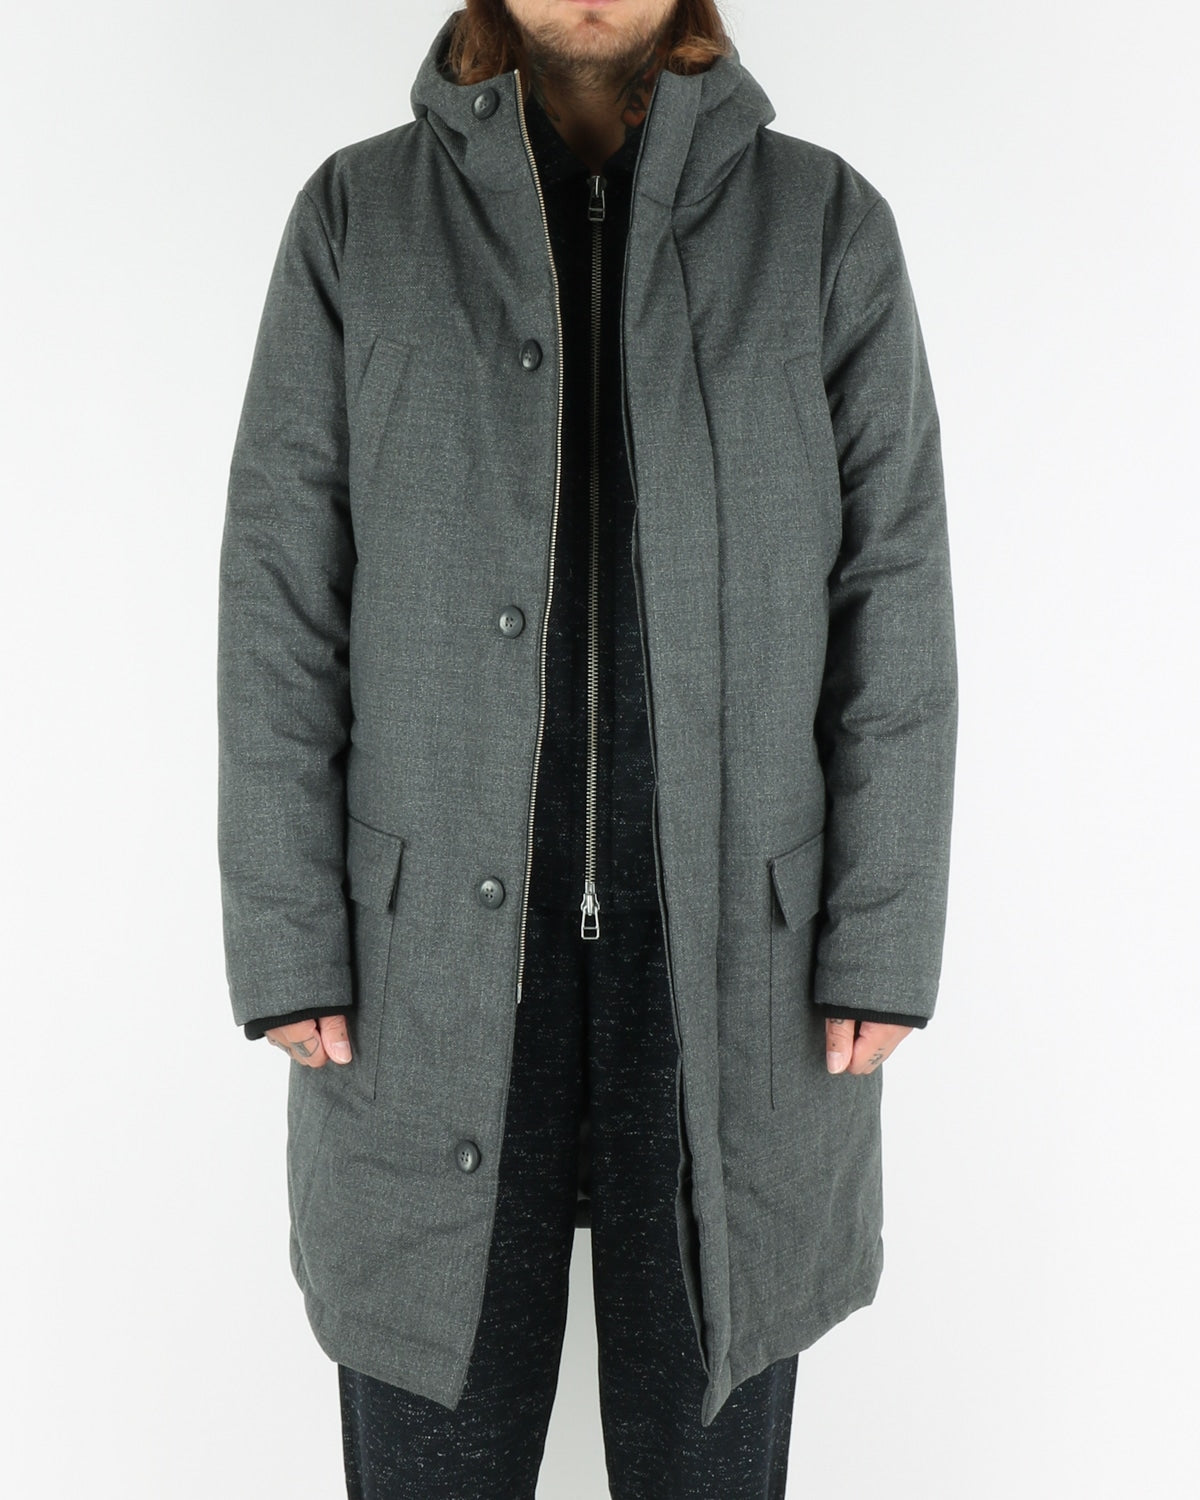 journal clothing_million coat_grey_view_2_5